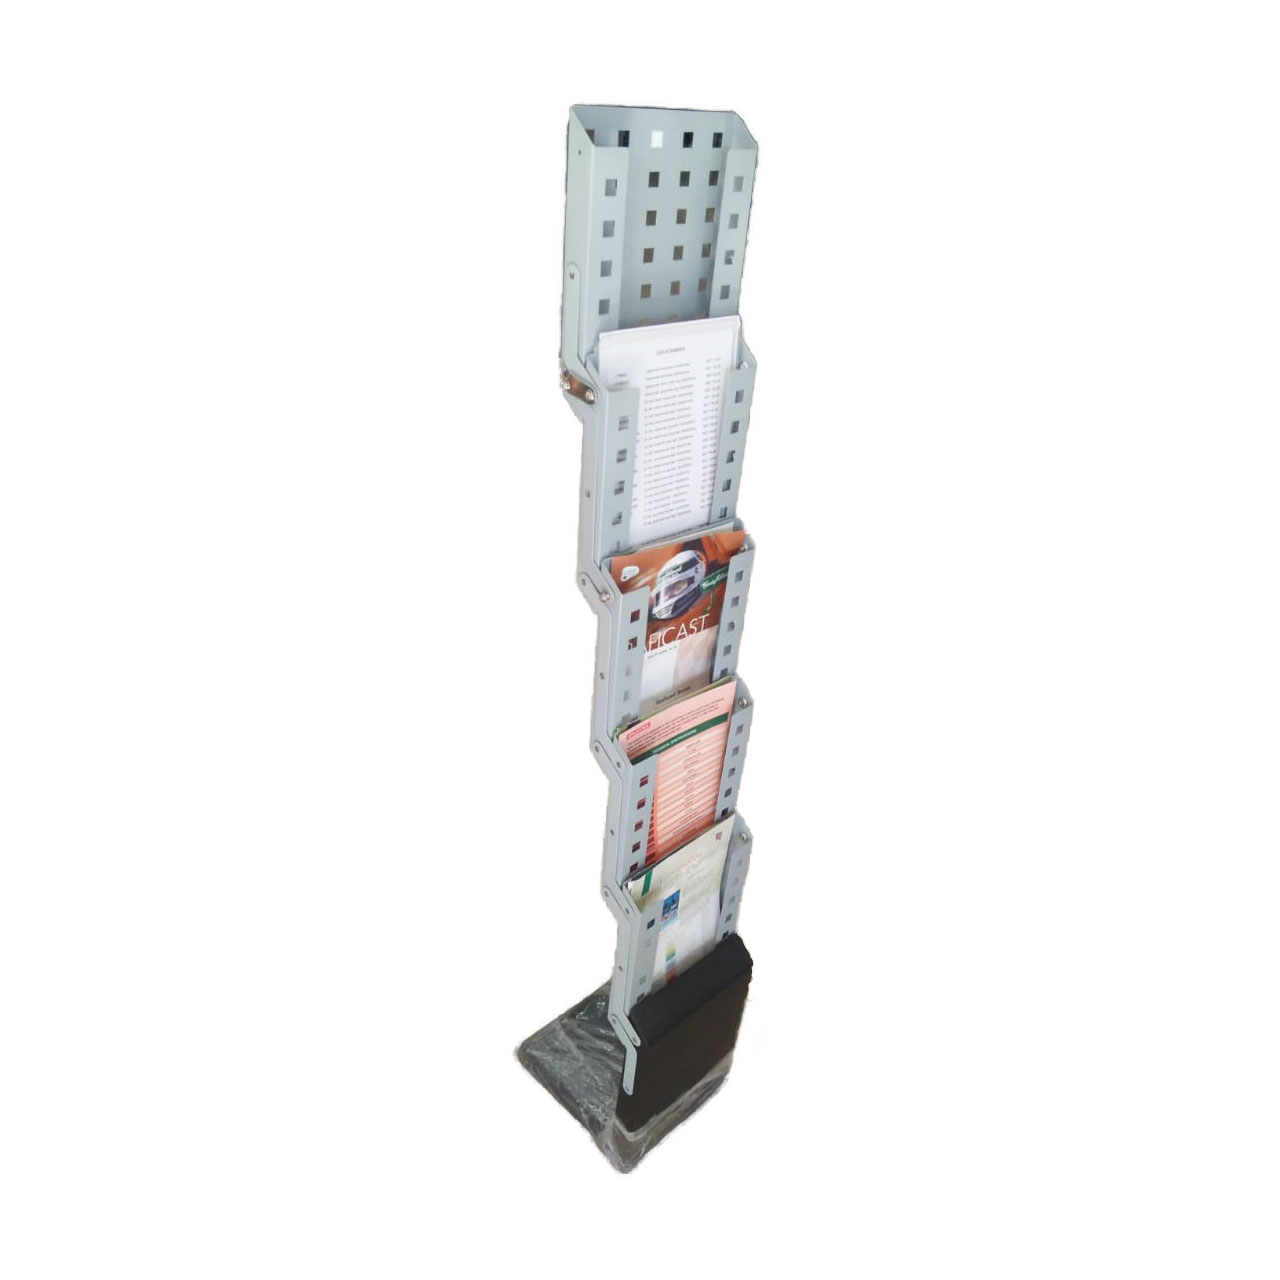 5-layer Foldable Metal Brochure Stand - Grey (pc)